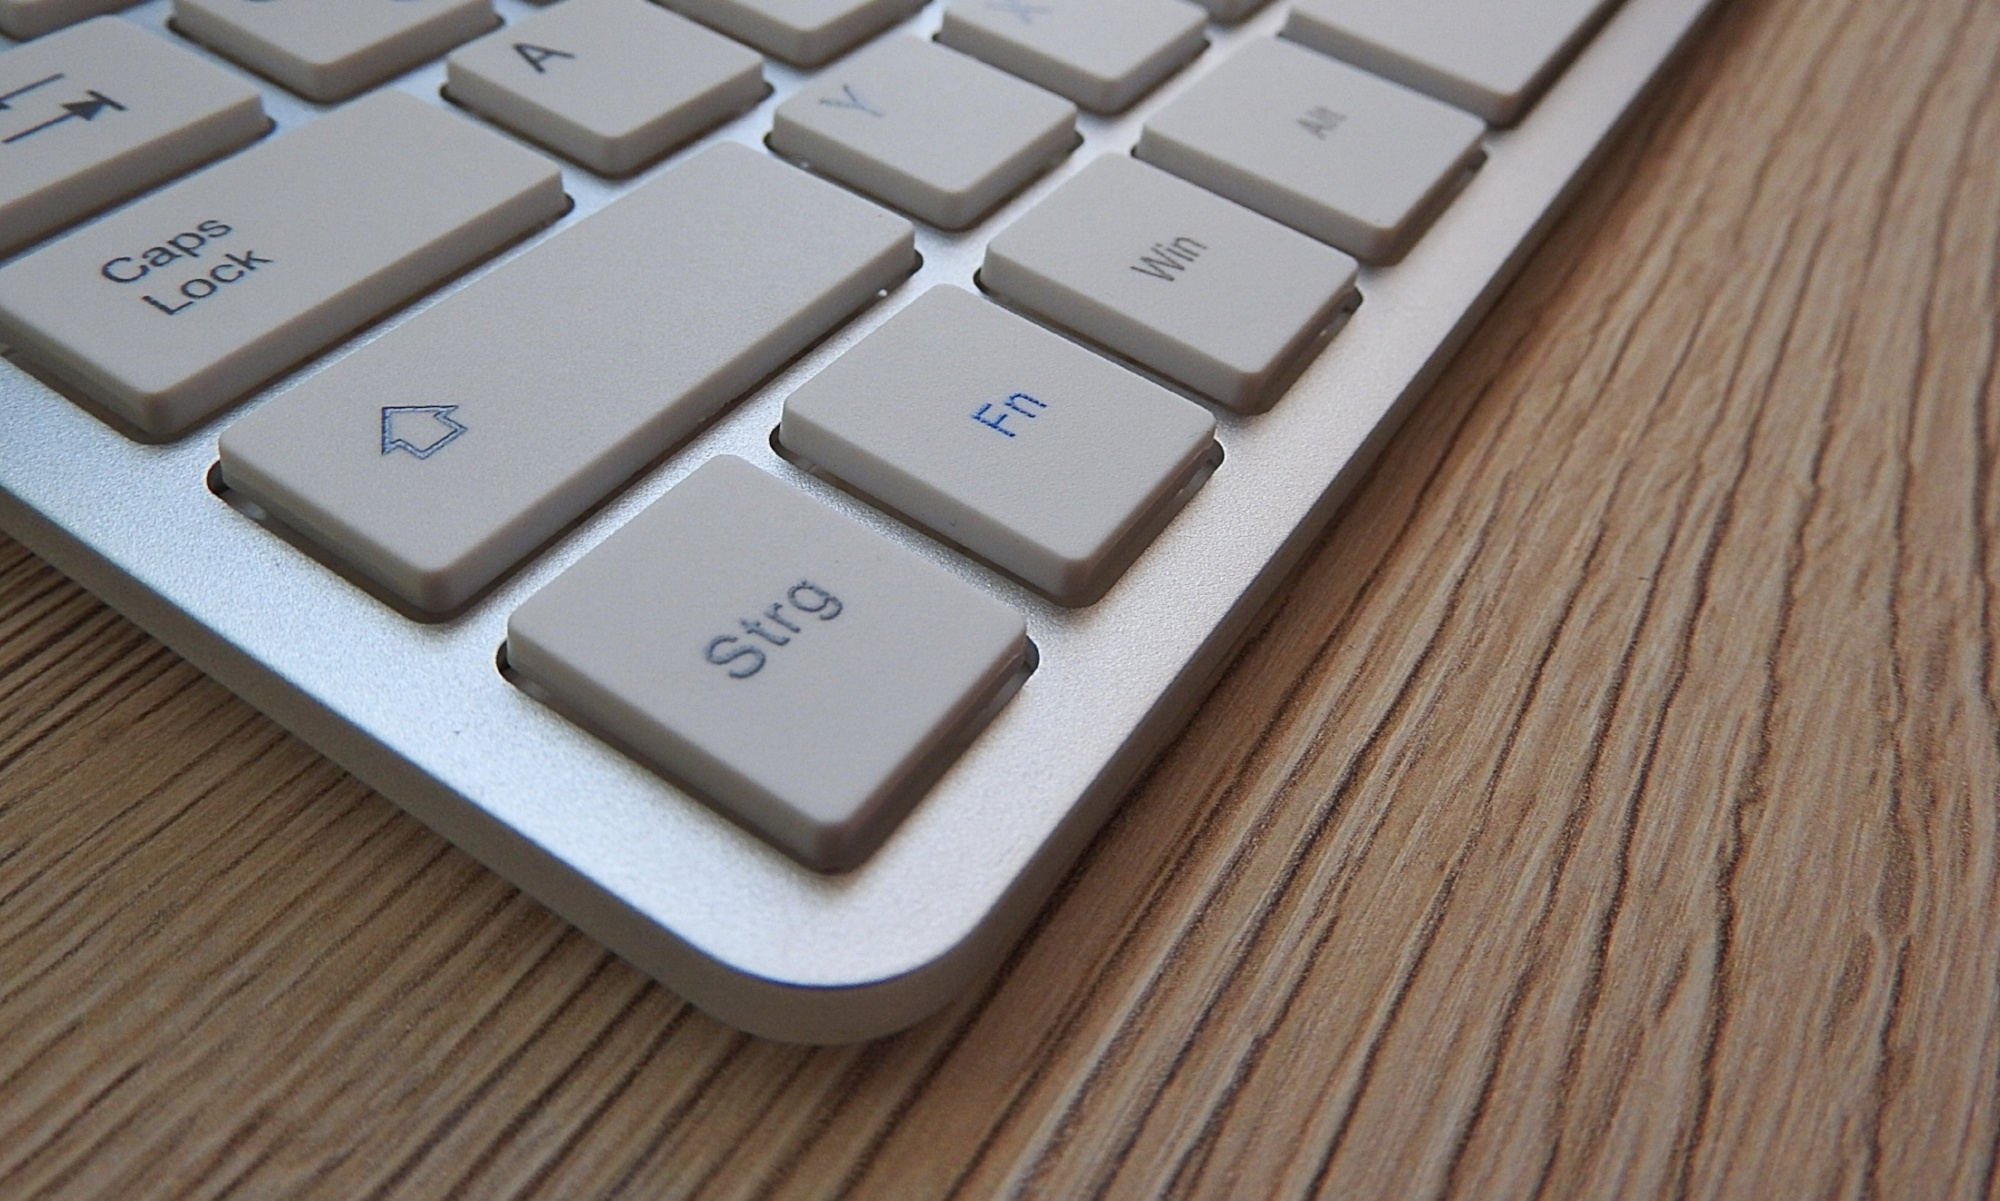 Touch typing and the mysterious uses of the function keys (F1-F12)